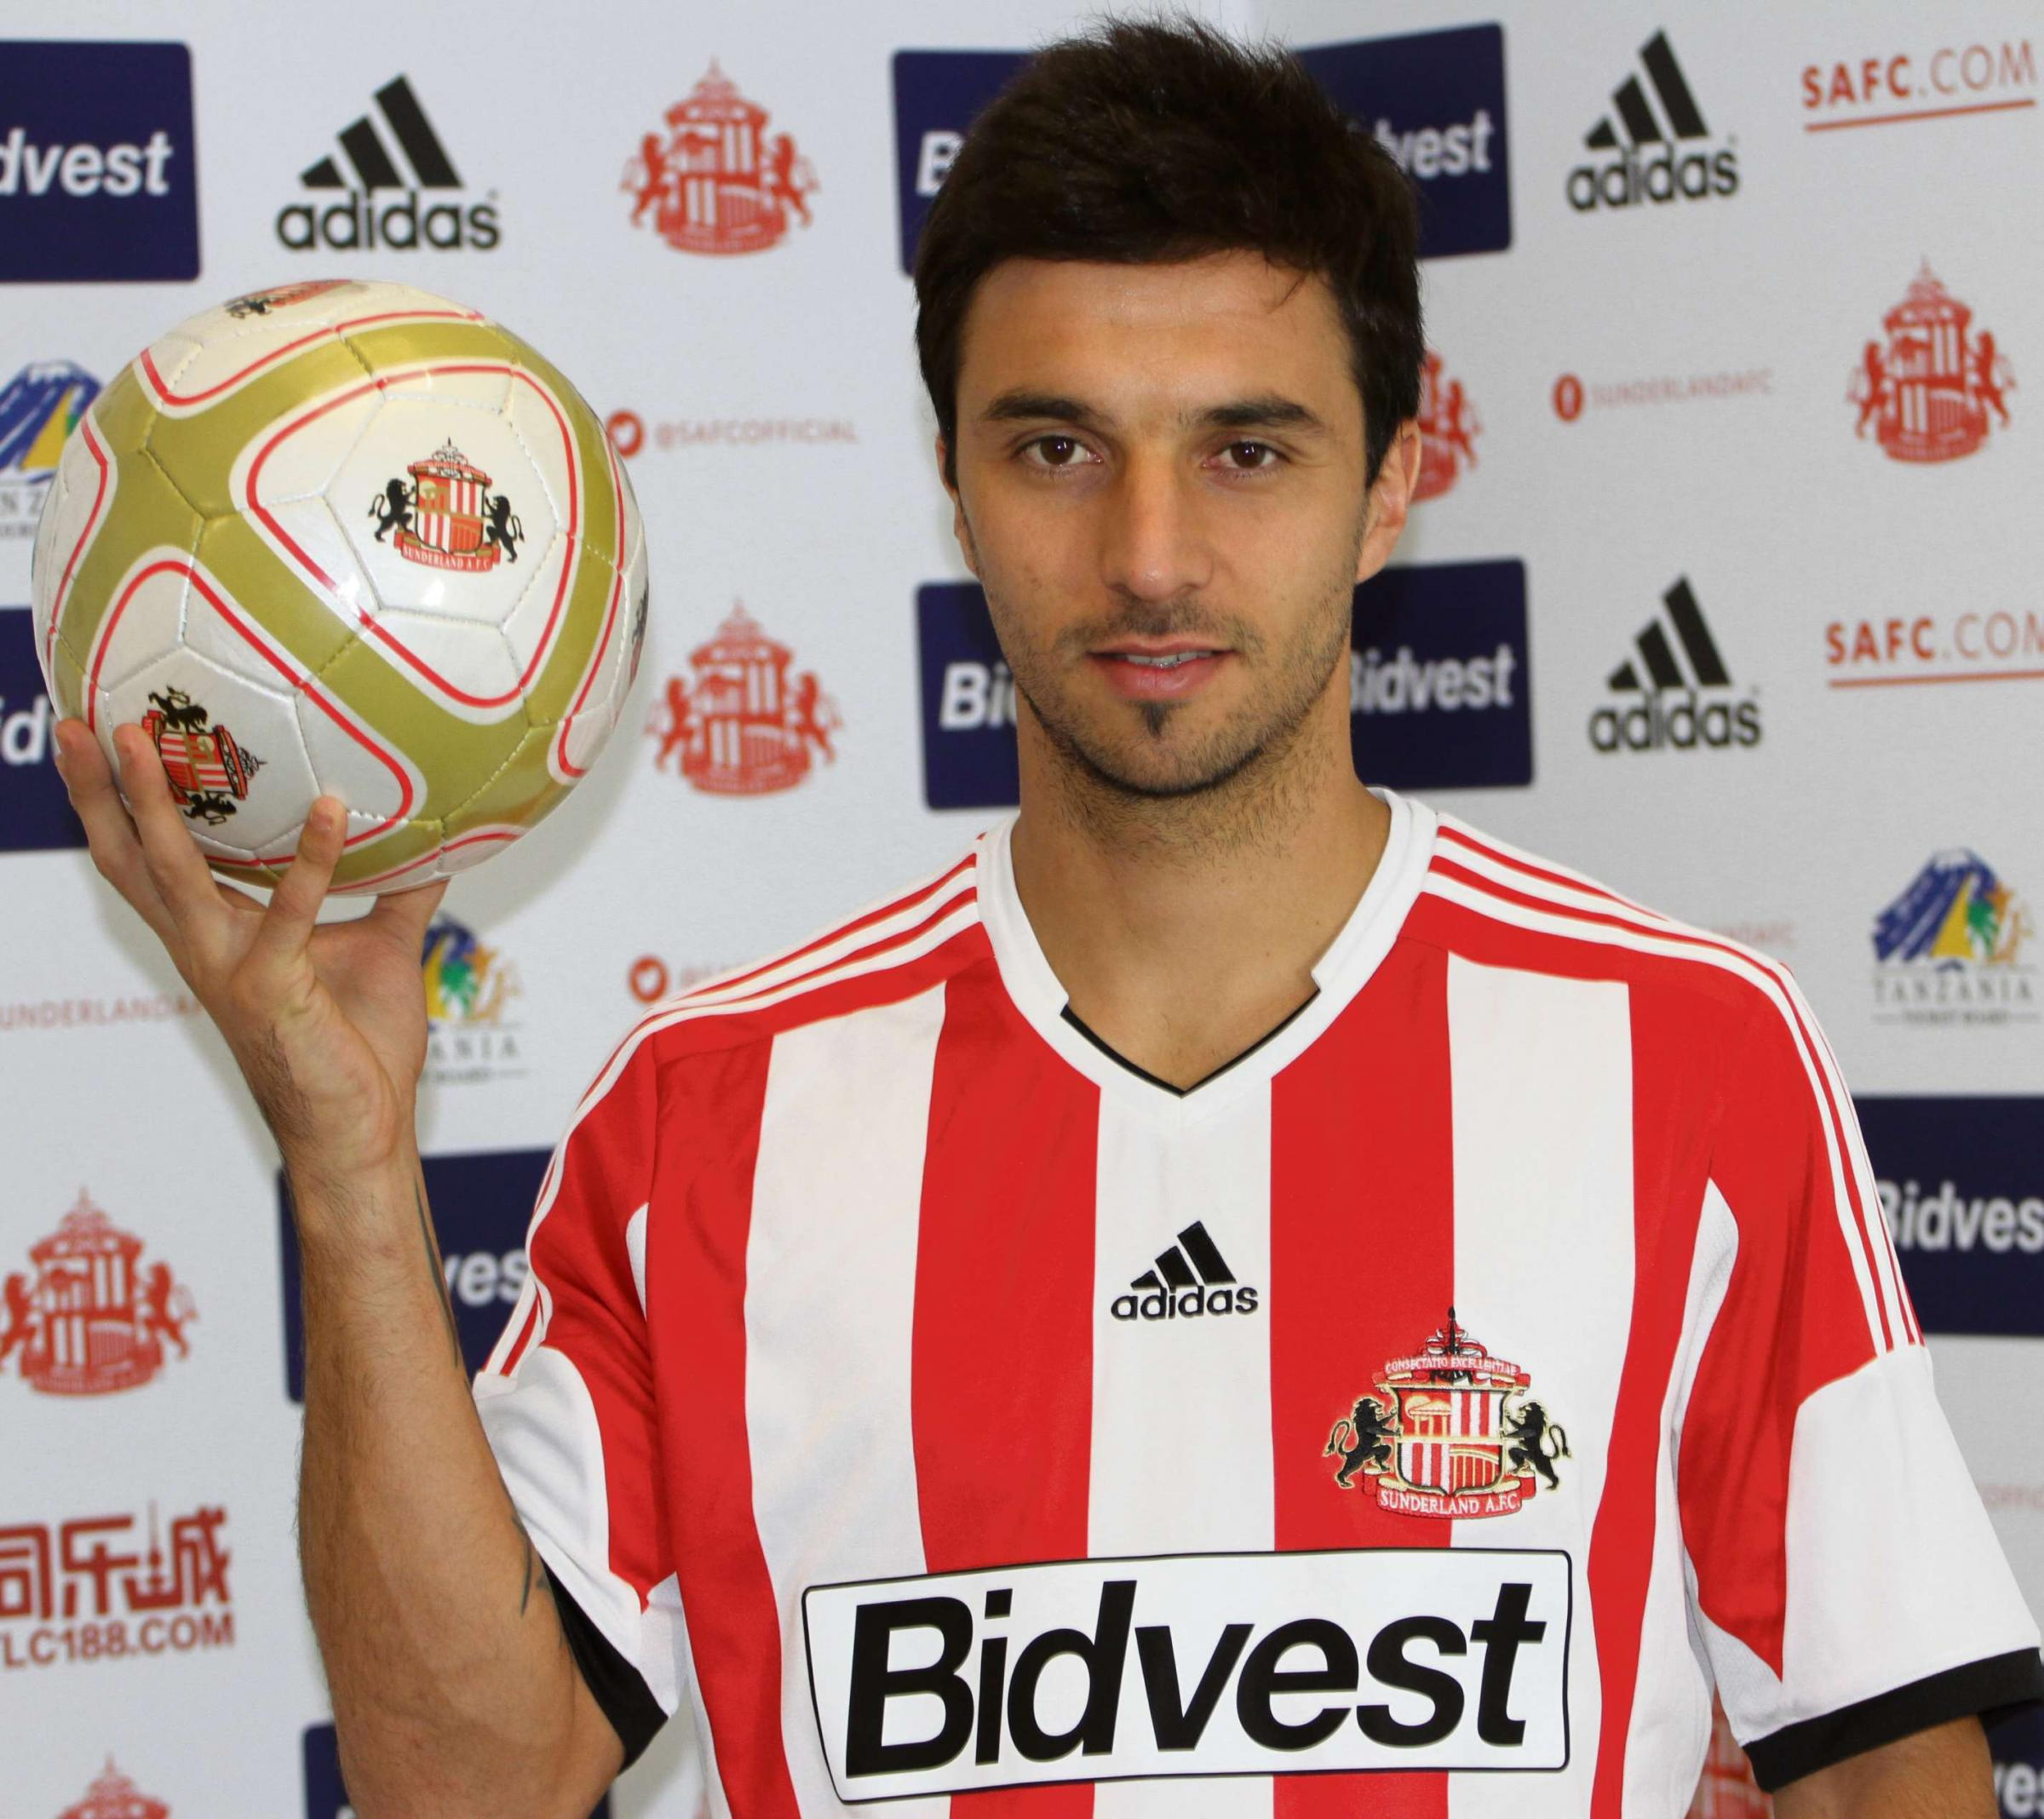 On his way: Sunderland's Ignacio Scocco is set for a return home